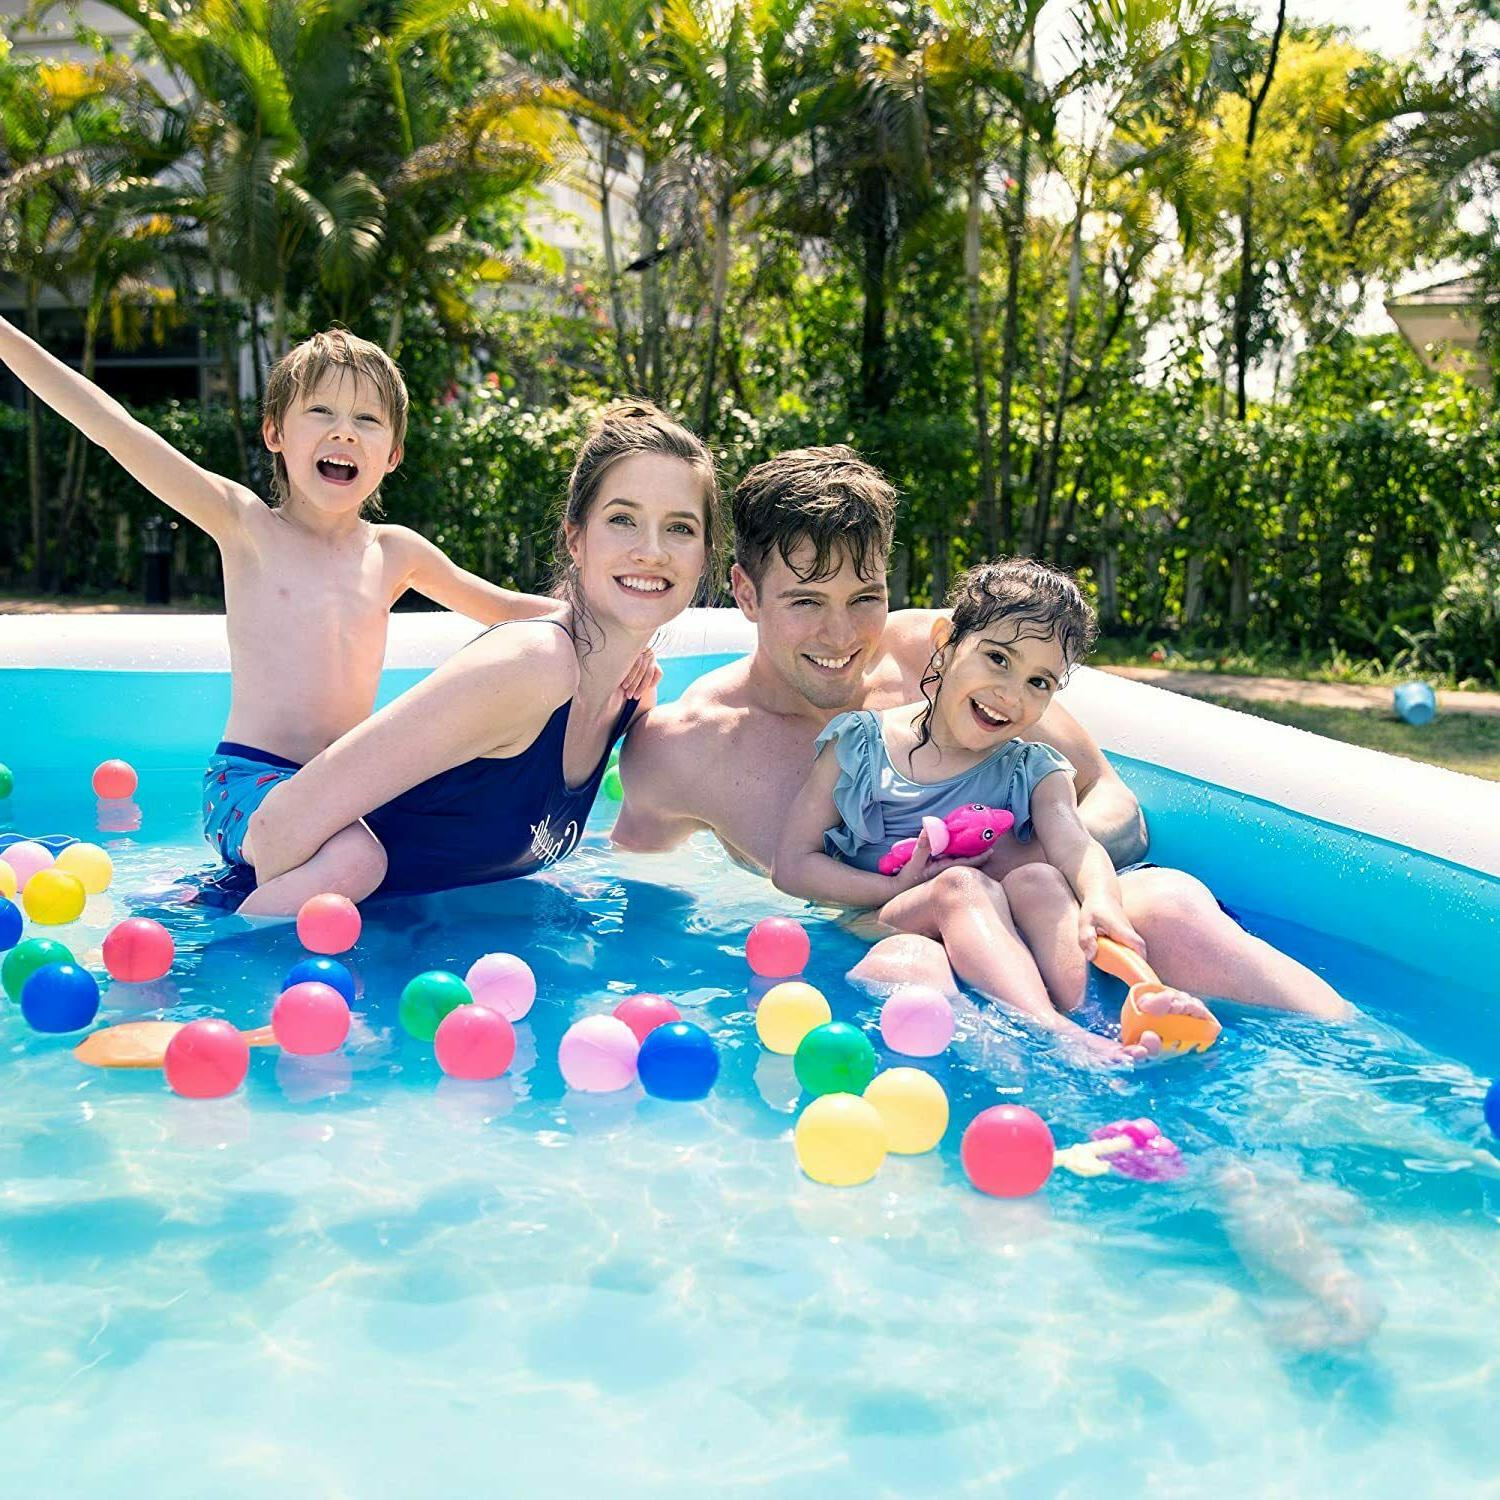 Inflatable Pool, Family Kids,Toddlers, Infant,